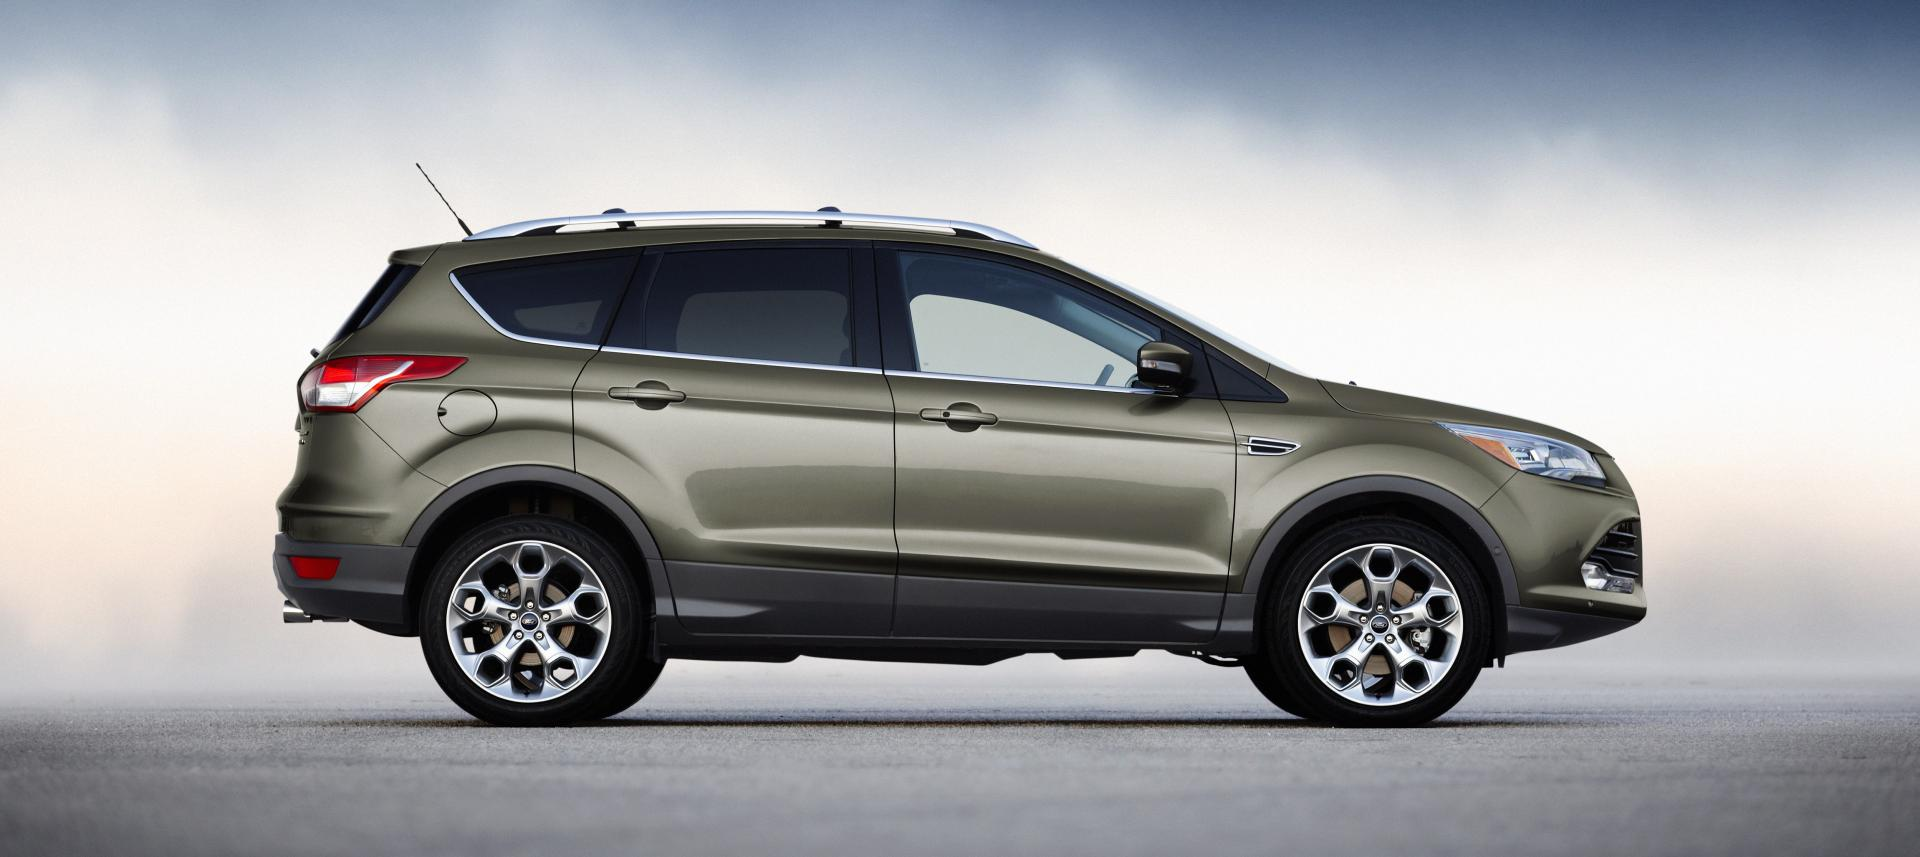 2013 ford escape news and information conceptcarz com rh conceptcarz com 2015 ford escape user manual 2015 ford escape user manual